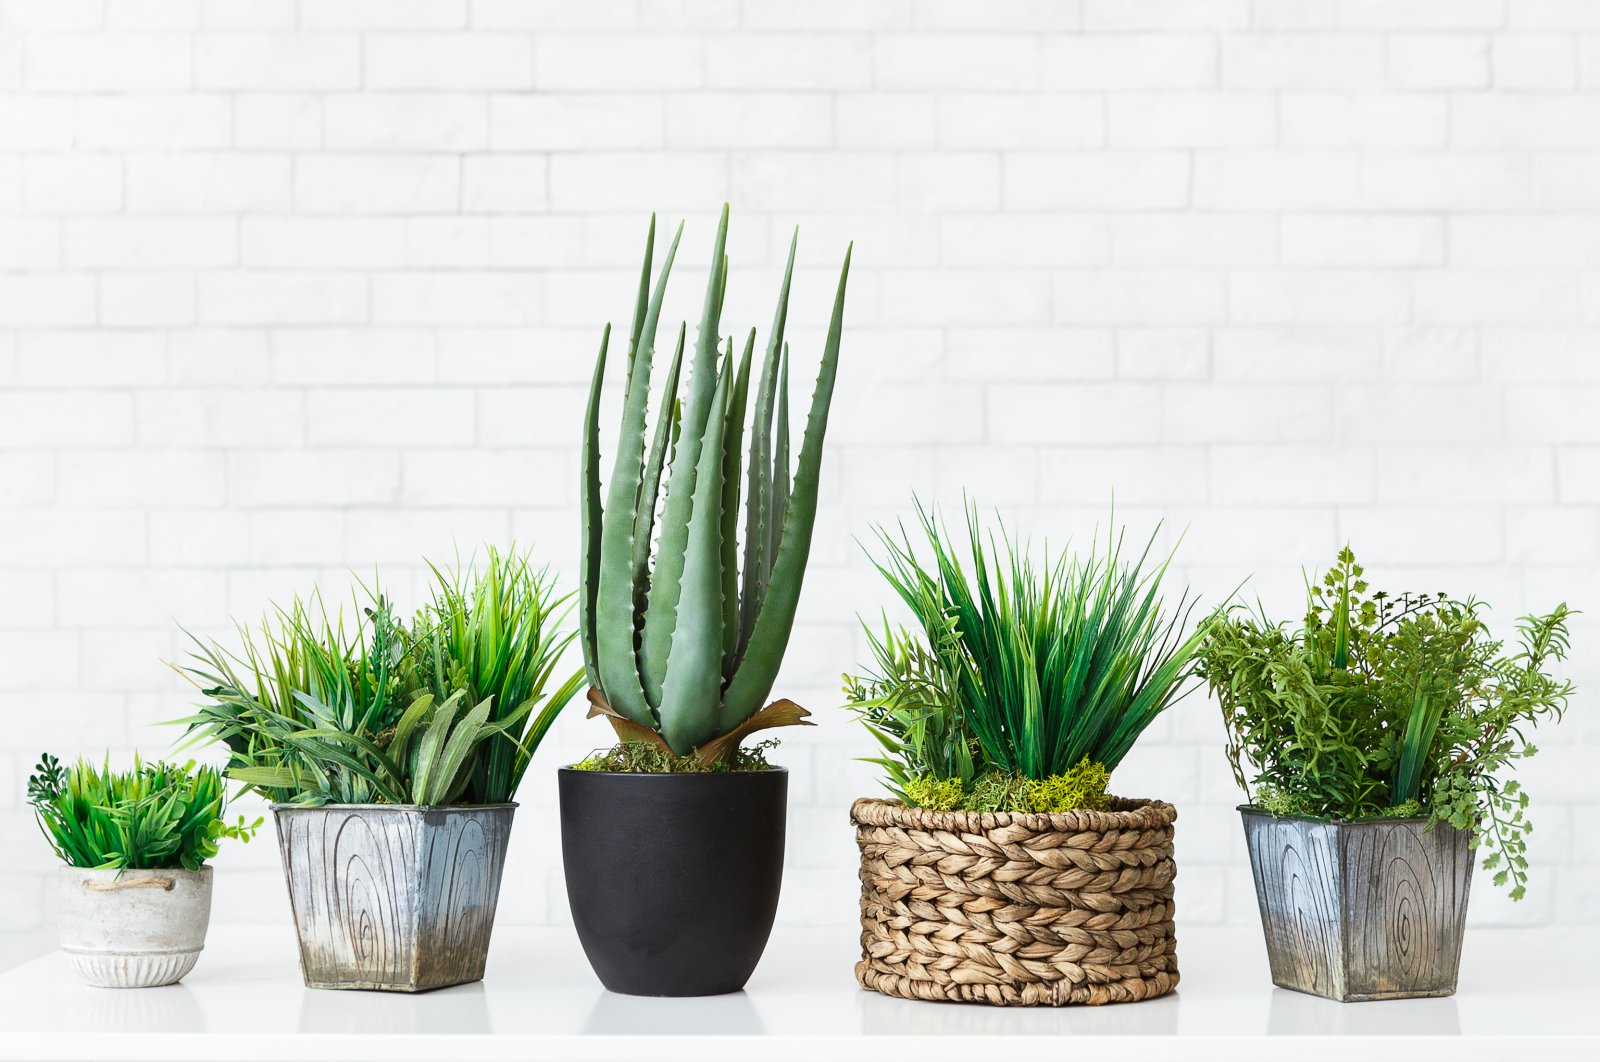 Various plants, cacti and succulents will not only change up the air at your home but also add some visual interest. (iStock Photo)